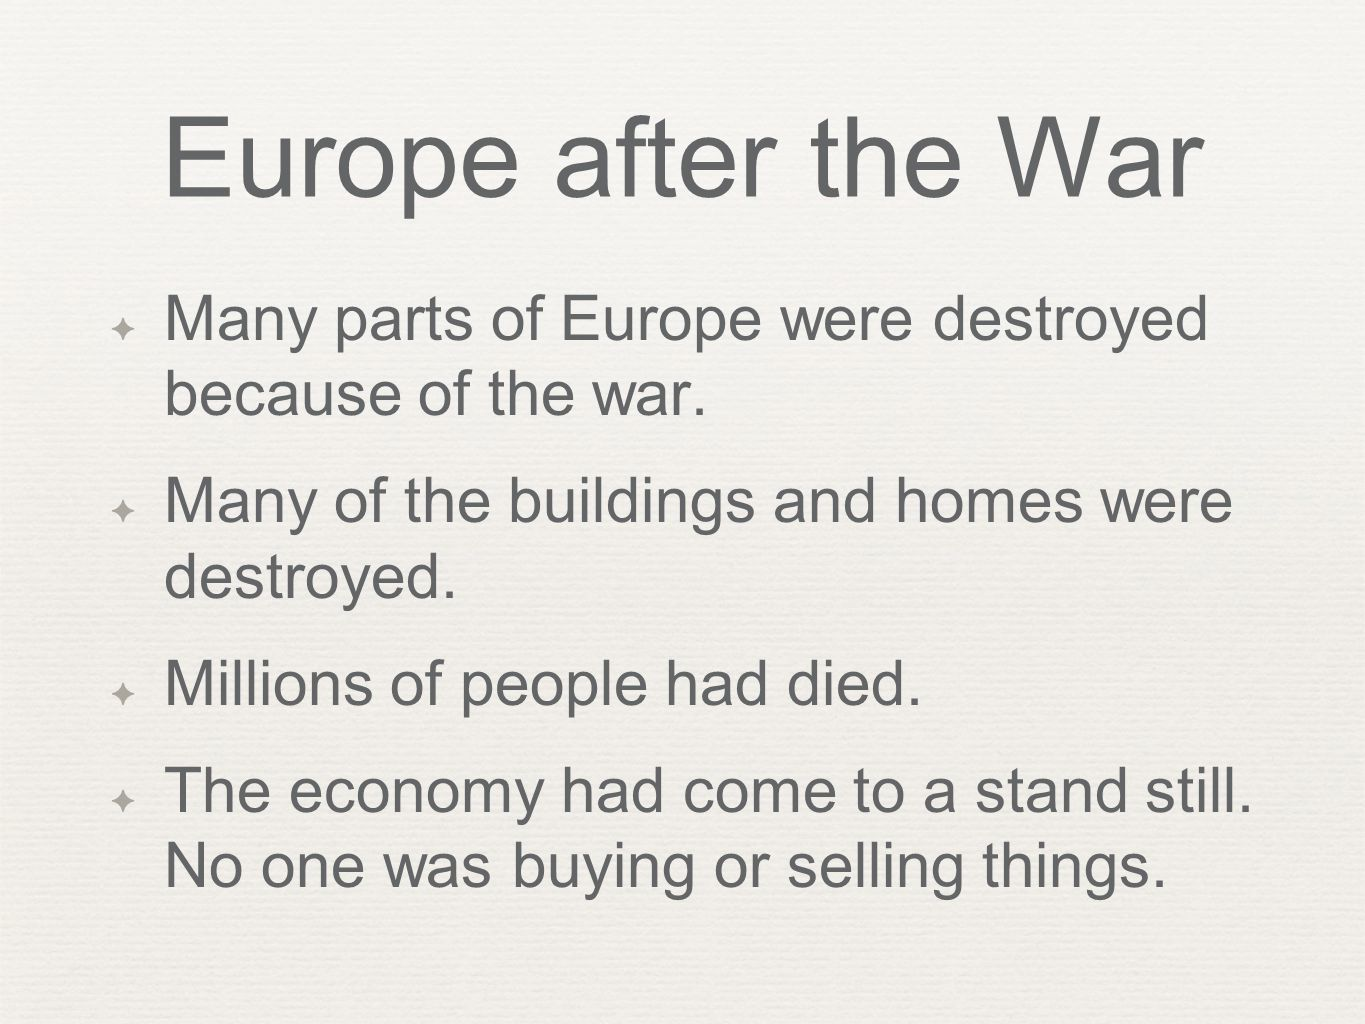 Europe after the War ✦ Many parts of Europe were destroyed because of the war. ✦ Many of the buildings and homes were destroyed. ✦ Millions of people